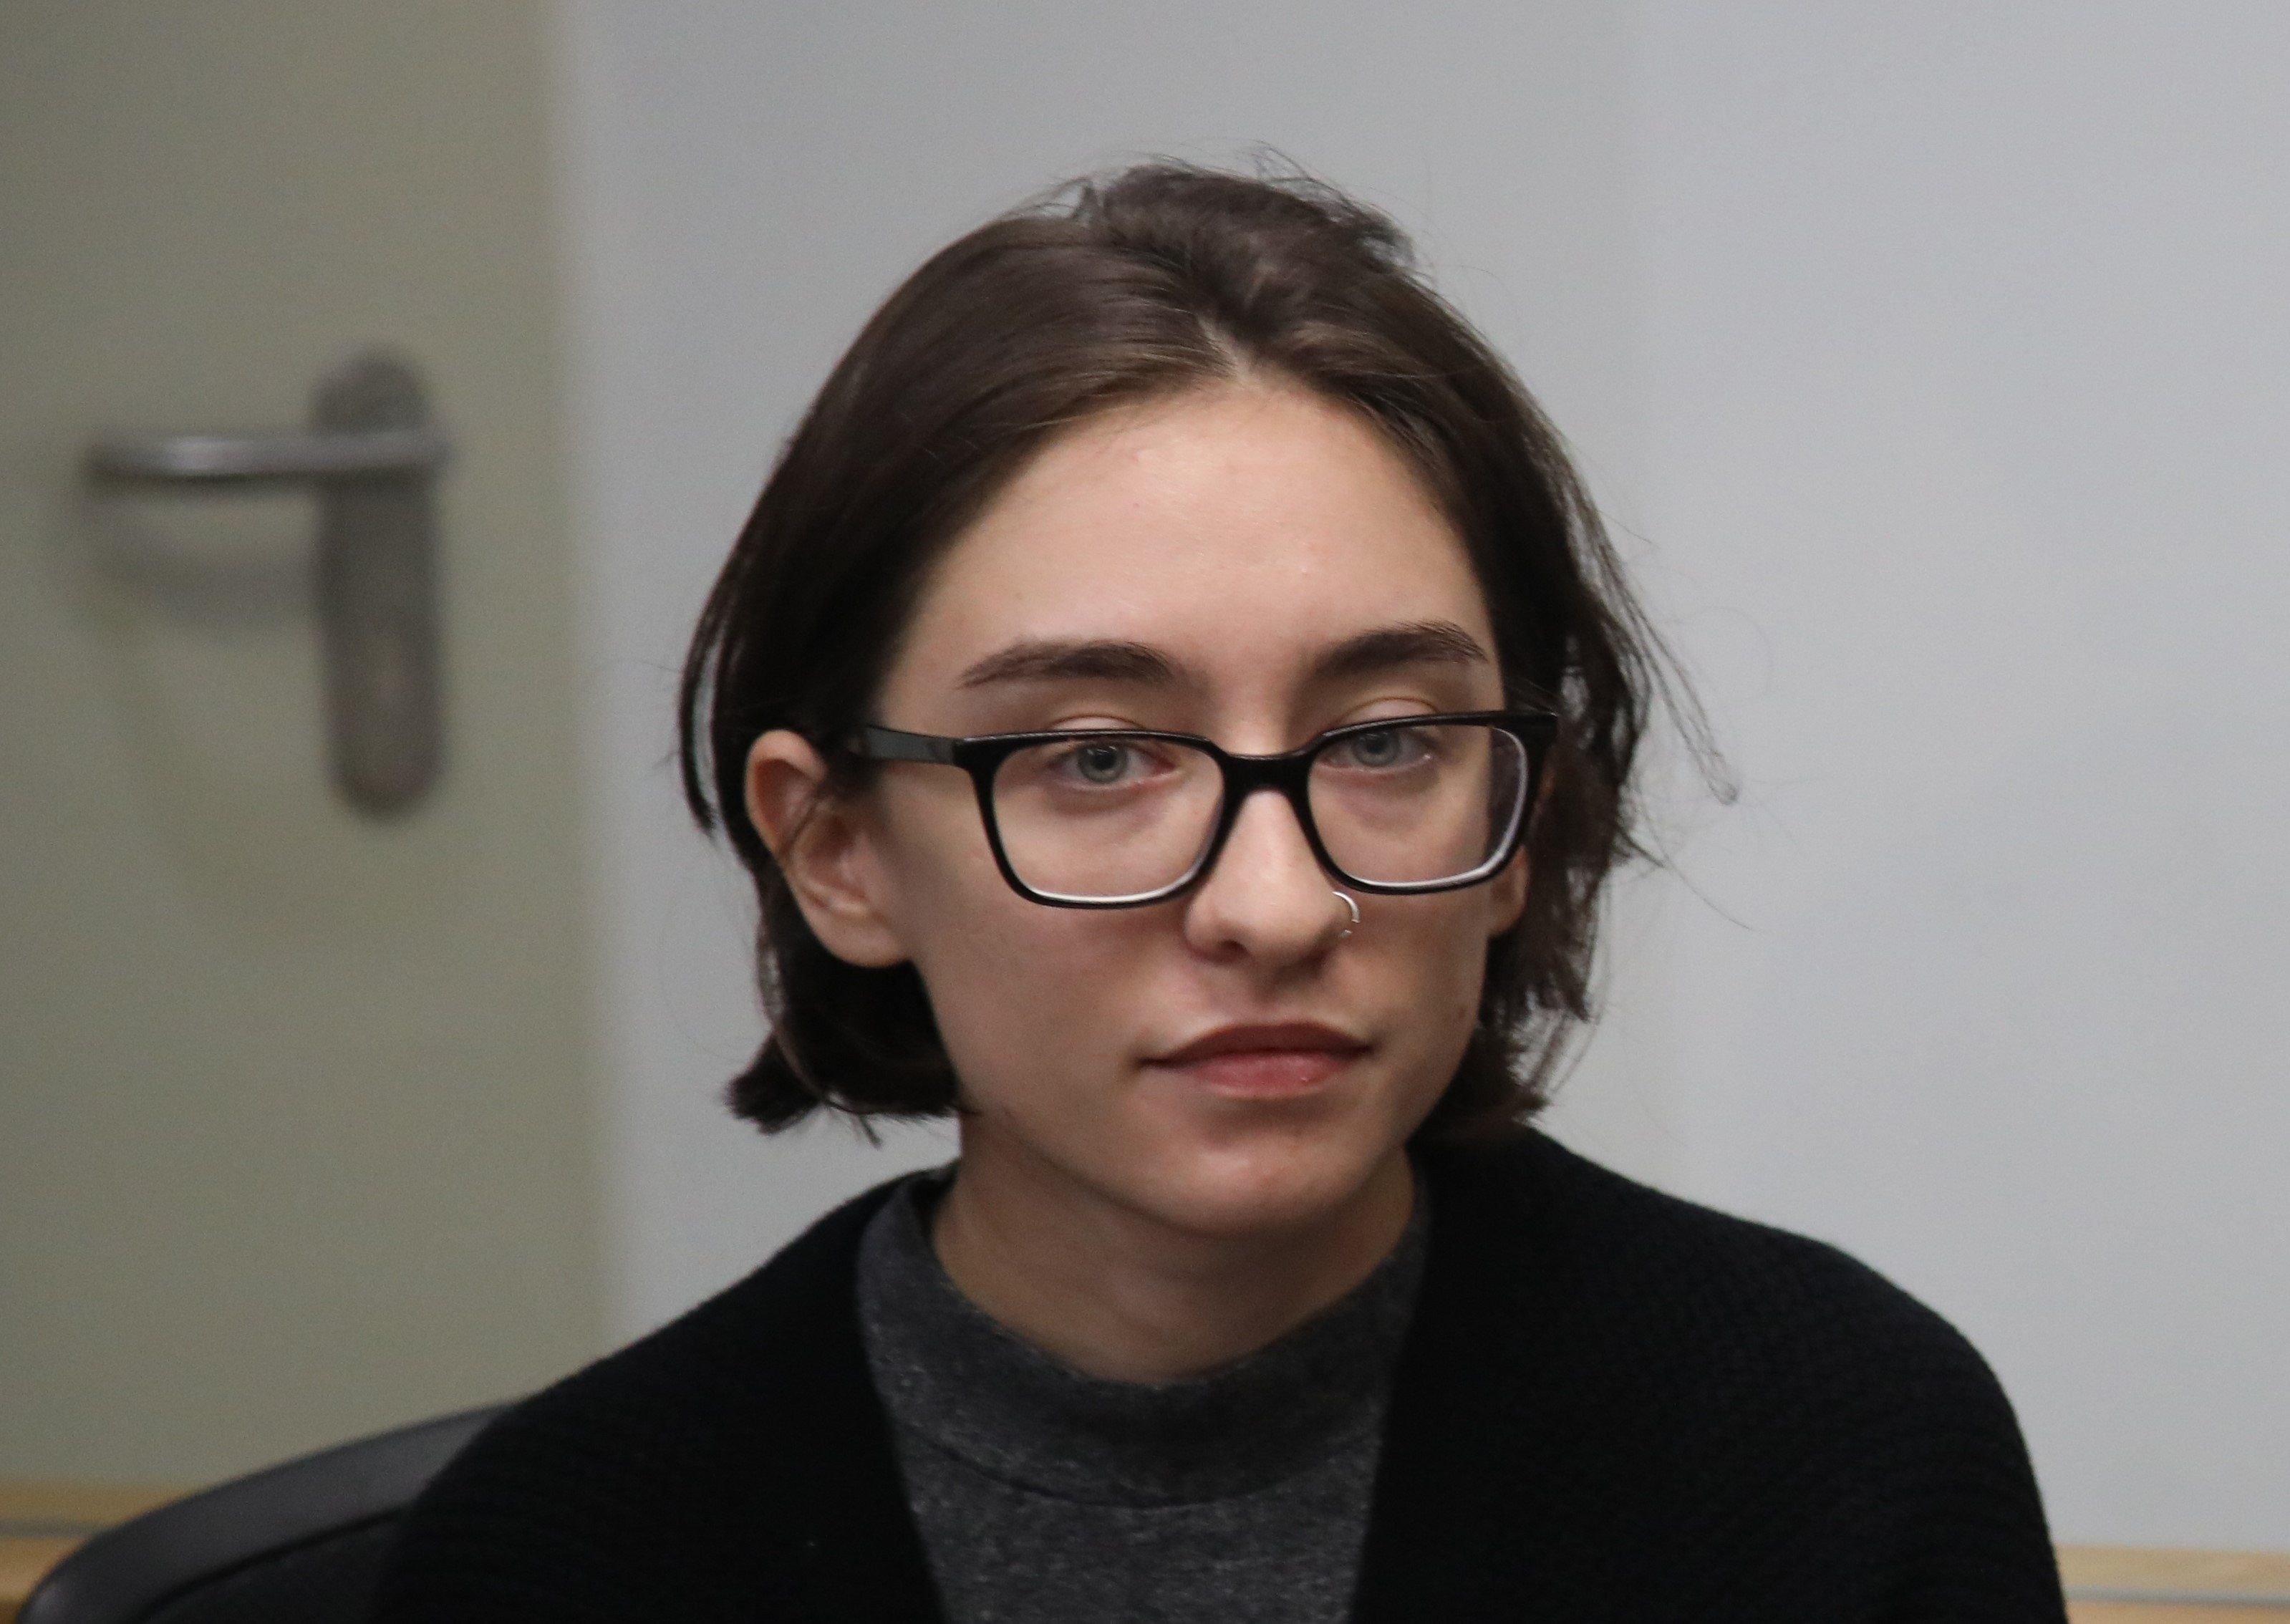 TEL AVIV, ISRAEL - OCTOBER 11: 22-year-old U.S. citizen Lara Alqasem, who has been held by Israeli authorities for a week appears in a court in Tel Aviv, Israel on October 11, 2018. Lara Alqasem has been in Israeli custody since arriving at Ben Gurion International Airport last Tuesday with a valid student visa hoping to study law, human rights and freedom of travel at Hebrew University in Jerusalem. Israeli officials are denying Alqasem entry based on allegations that she supported the Boycott, Divestment and Sanctions (BDS) movement, which urges businesses, educational institutions and celebrities to cut ties with Israel. (Photo by Mostafa Alkharouf /Anadolu Agency/Getty Images)